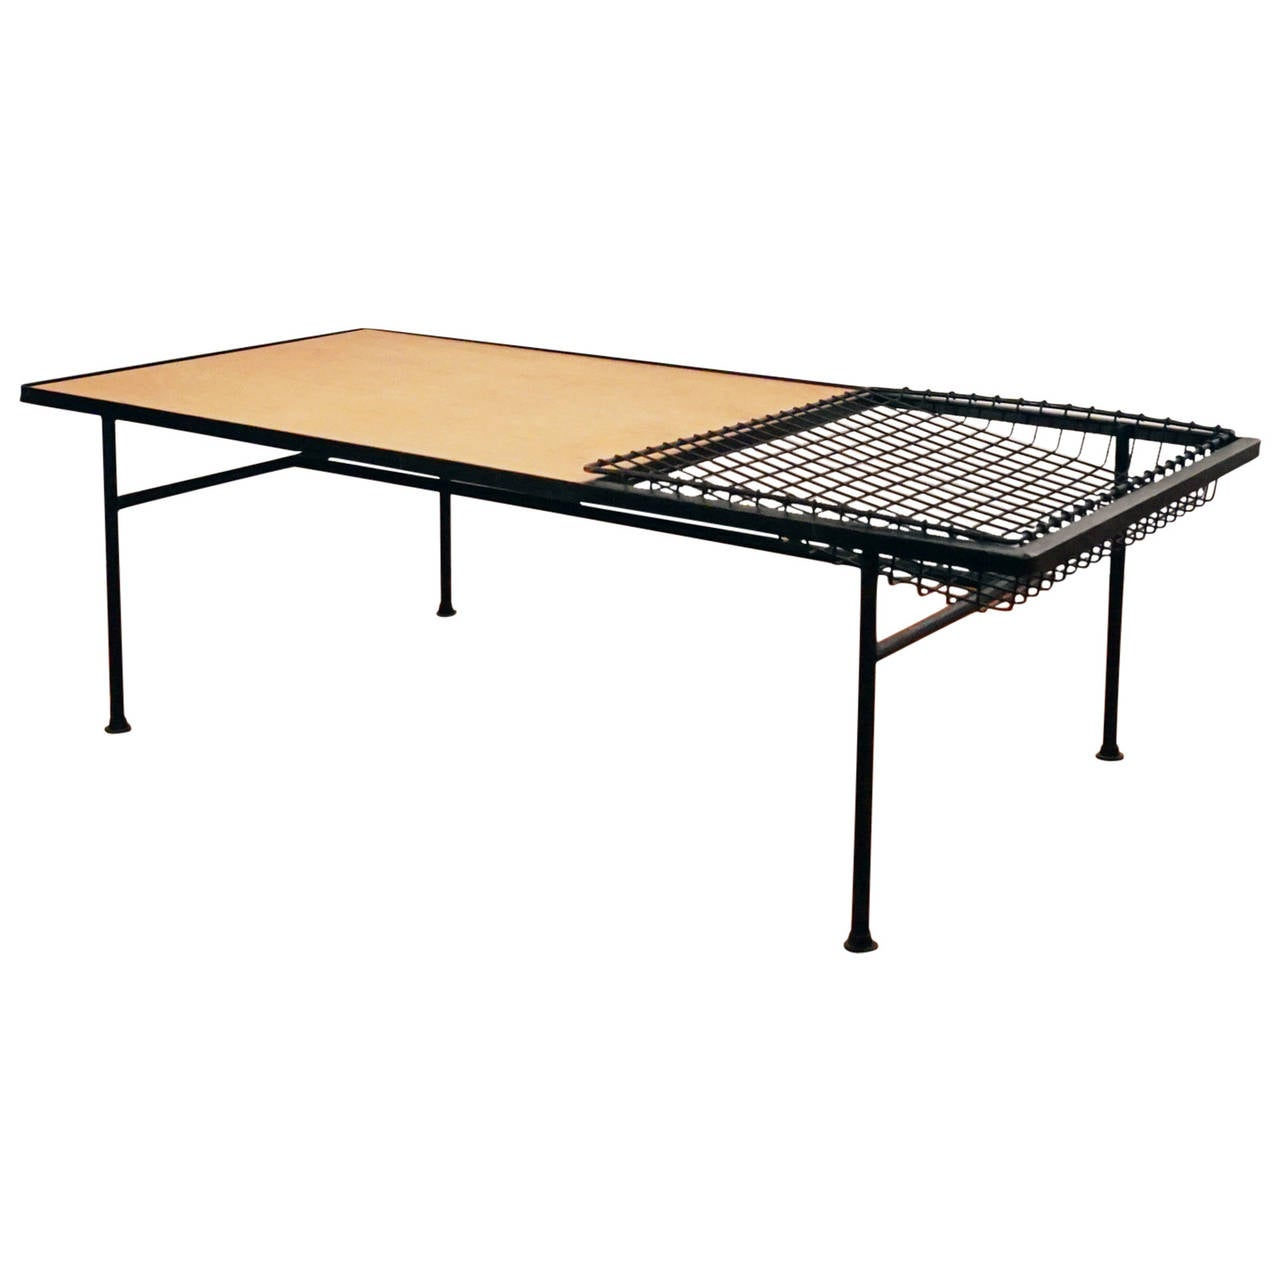 Wonderful image of 1950s Iron and Wood Coffee Table with Magazine Rack at 1stdibs with #A86E23 color and 1280x1280 pixels